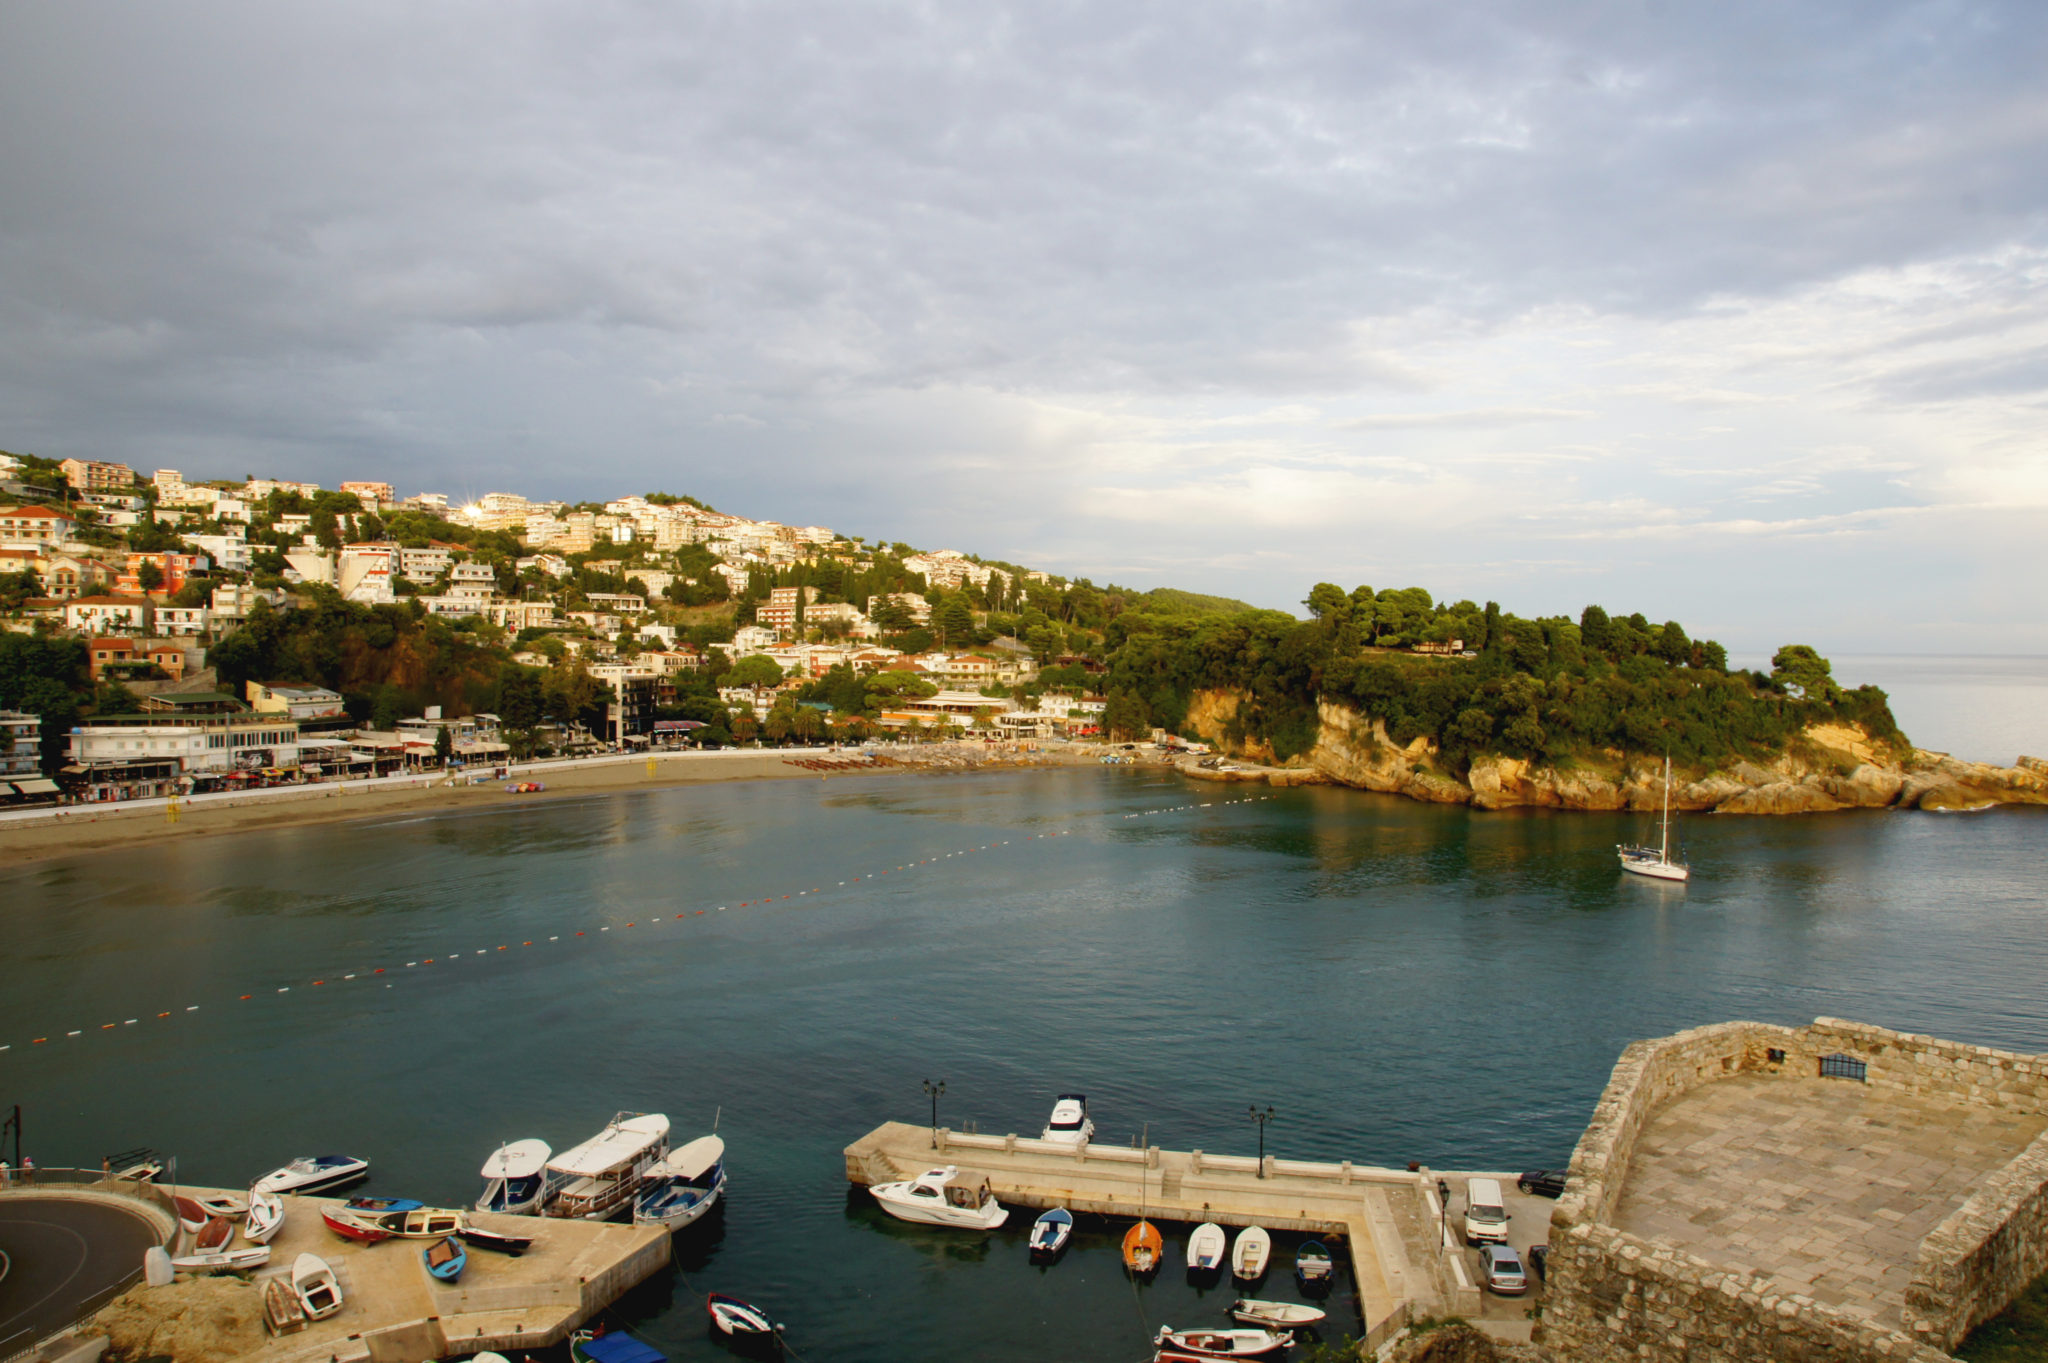 Hema_Montenegro_la_cote_adriatique_ulcinj_blog_voyage_travel_sunset_view_landscape2